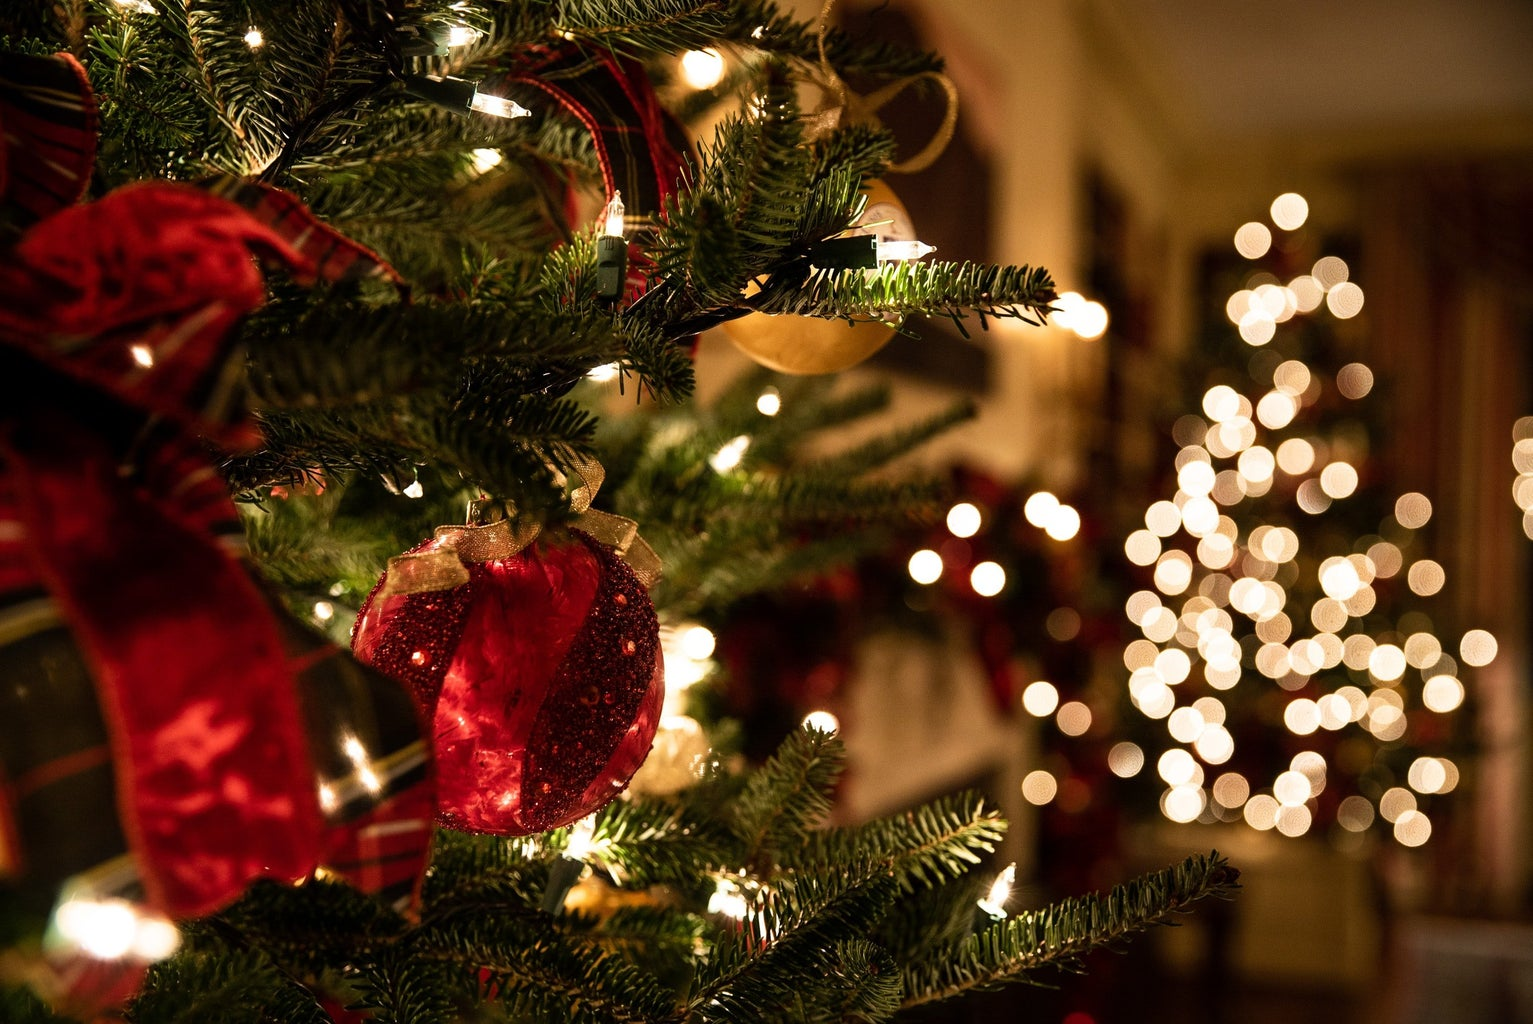 Christmas tree with lights and red and gold decorations